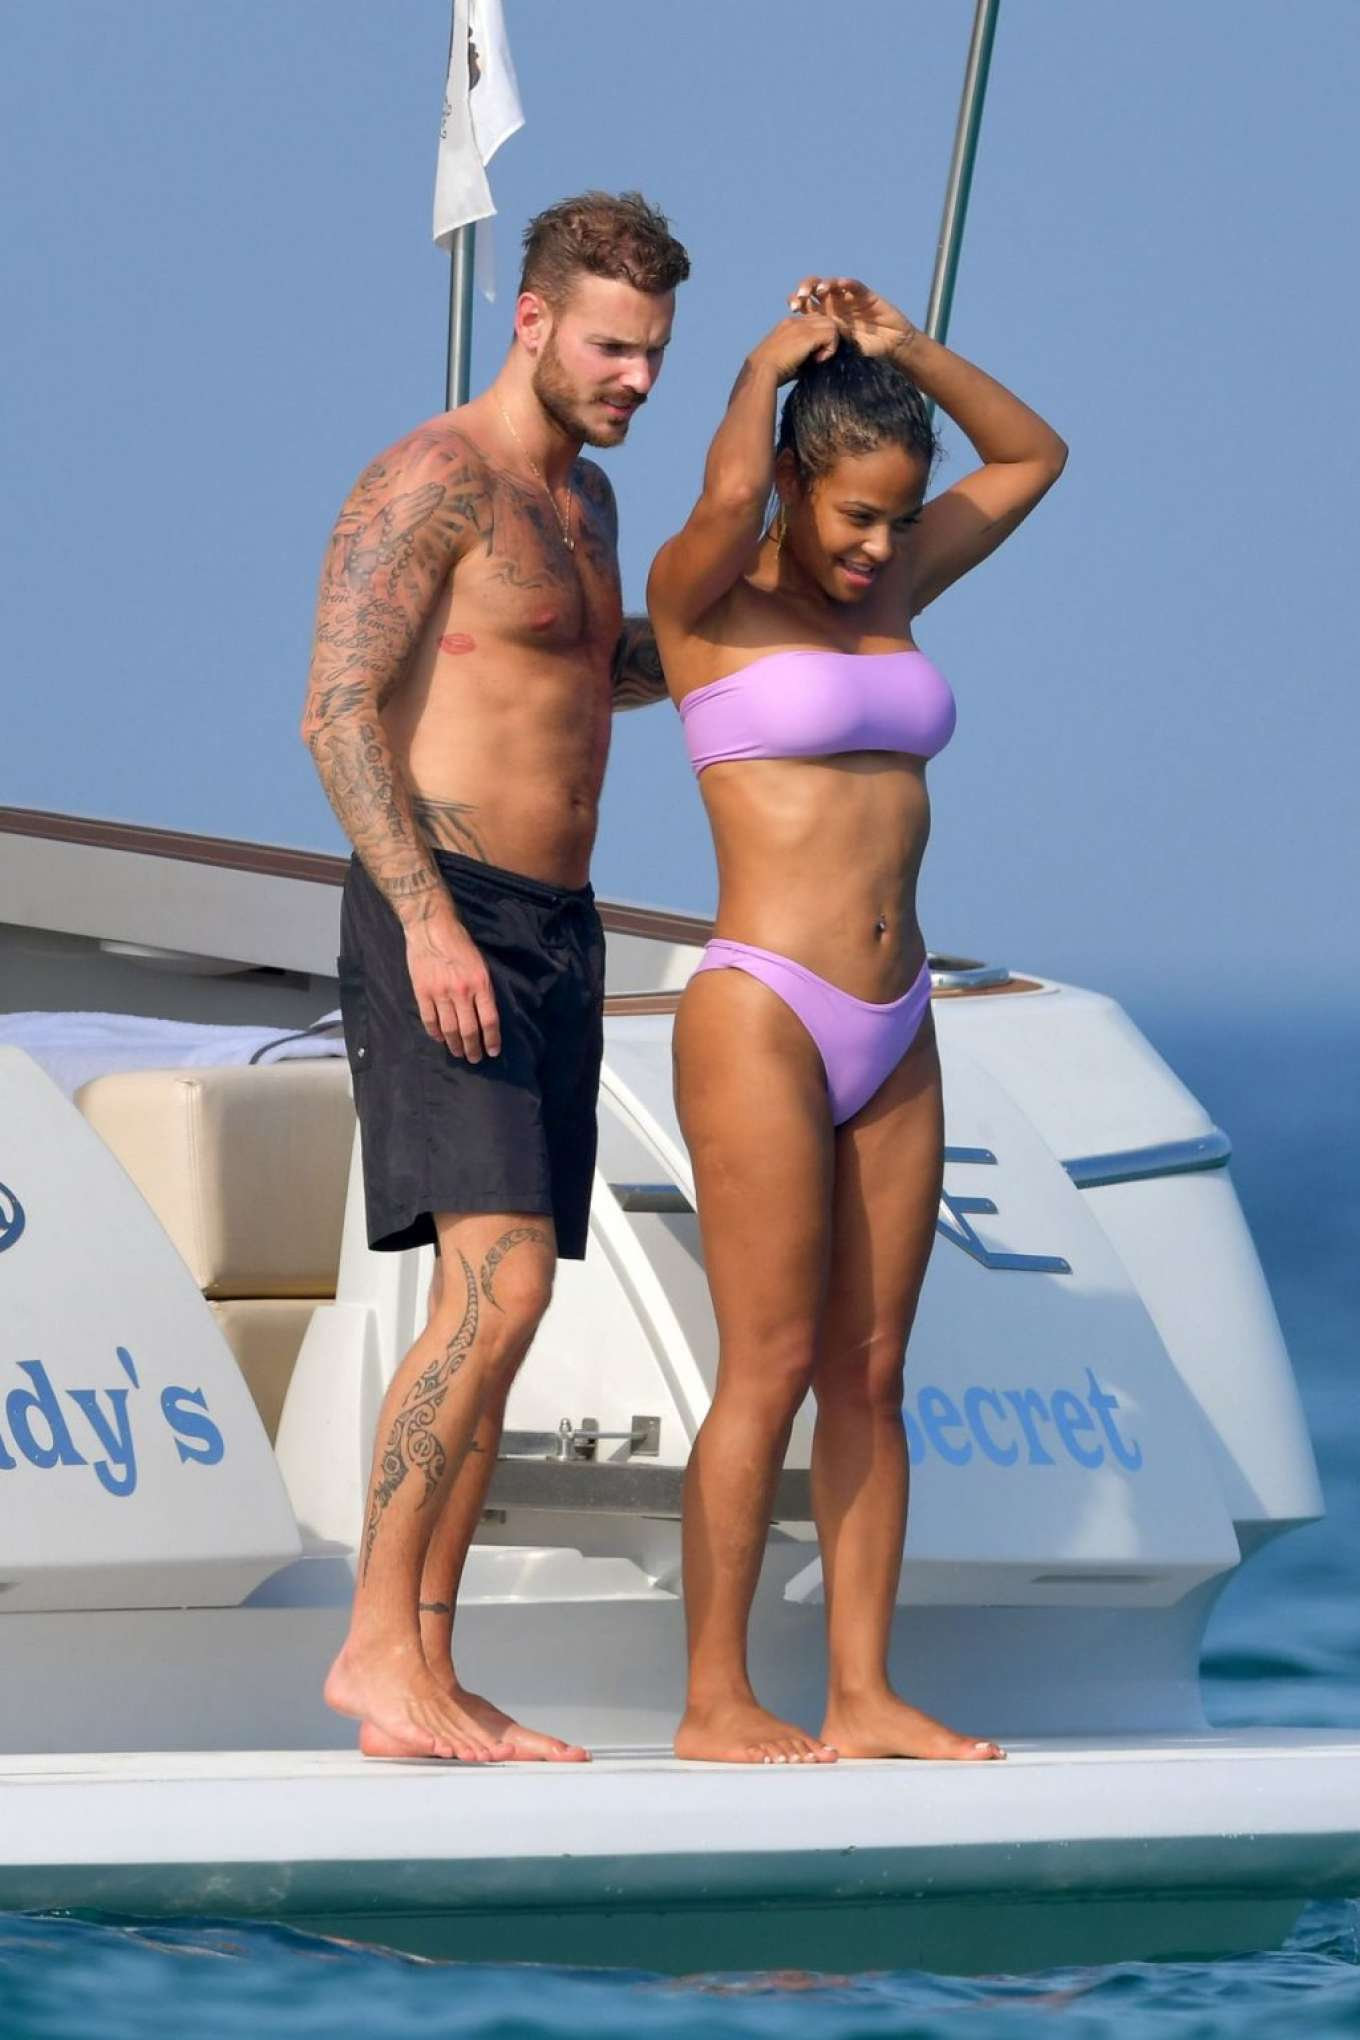 Christina Milian in Bikini with boyfriend Matt Pokora on the Lady's Secret boat in France